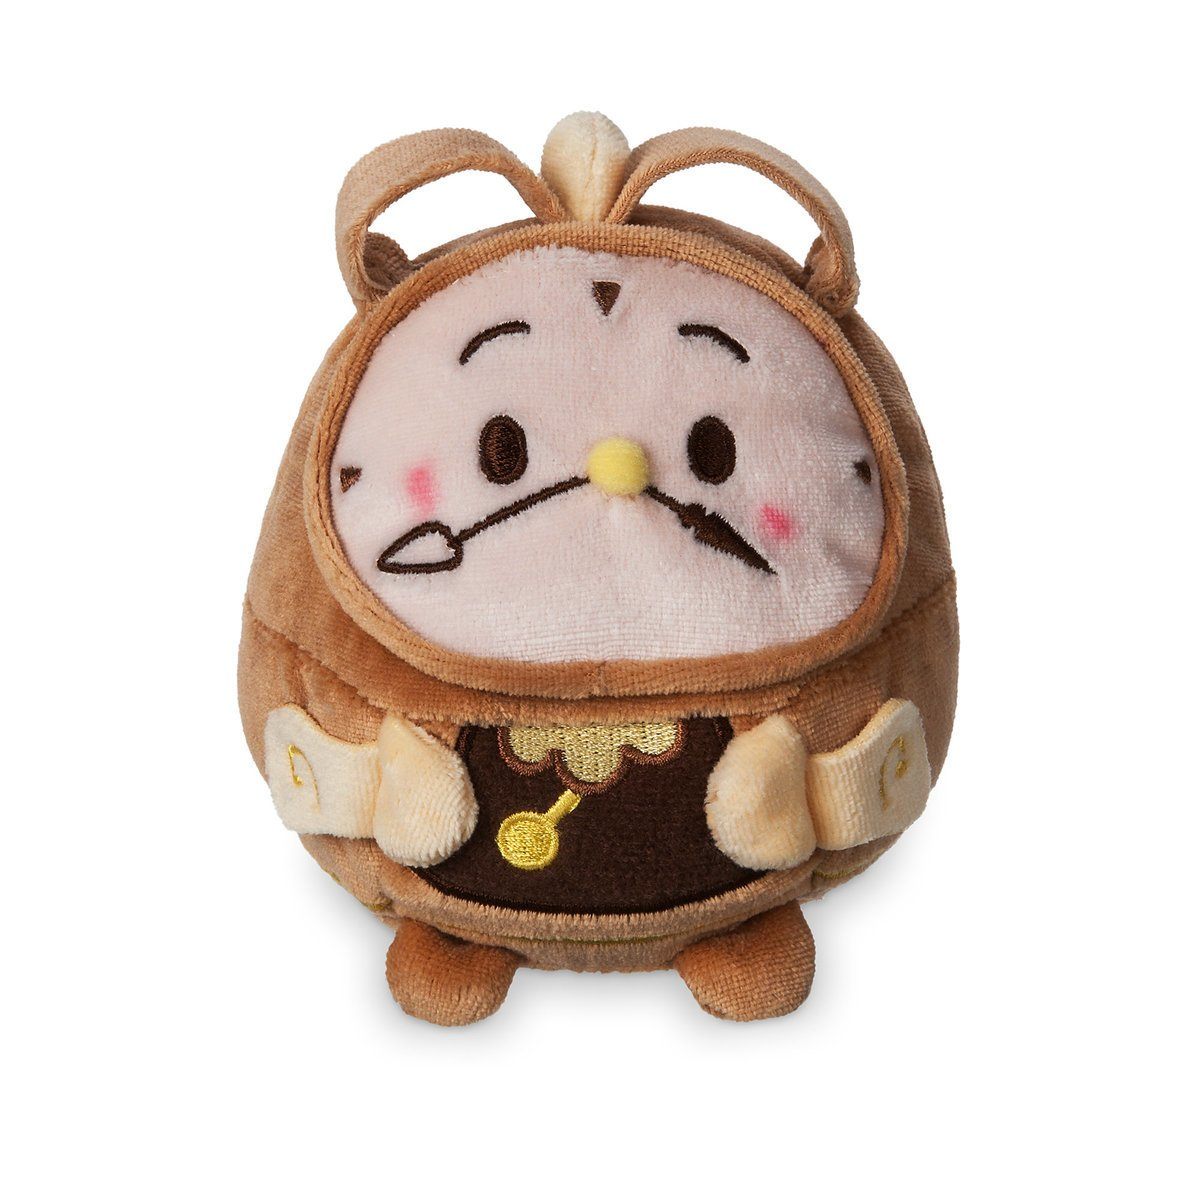 Disney Beauty And The Beast Cogsworth Scented Ufufy Plush Small New With Tags Walmart Com Walmart Com